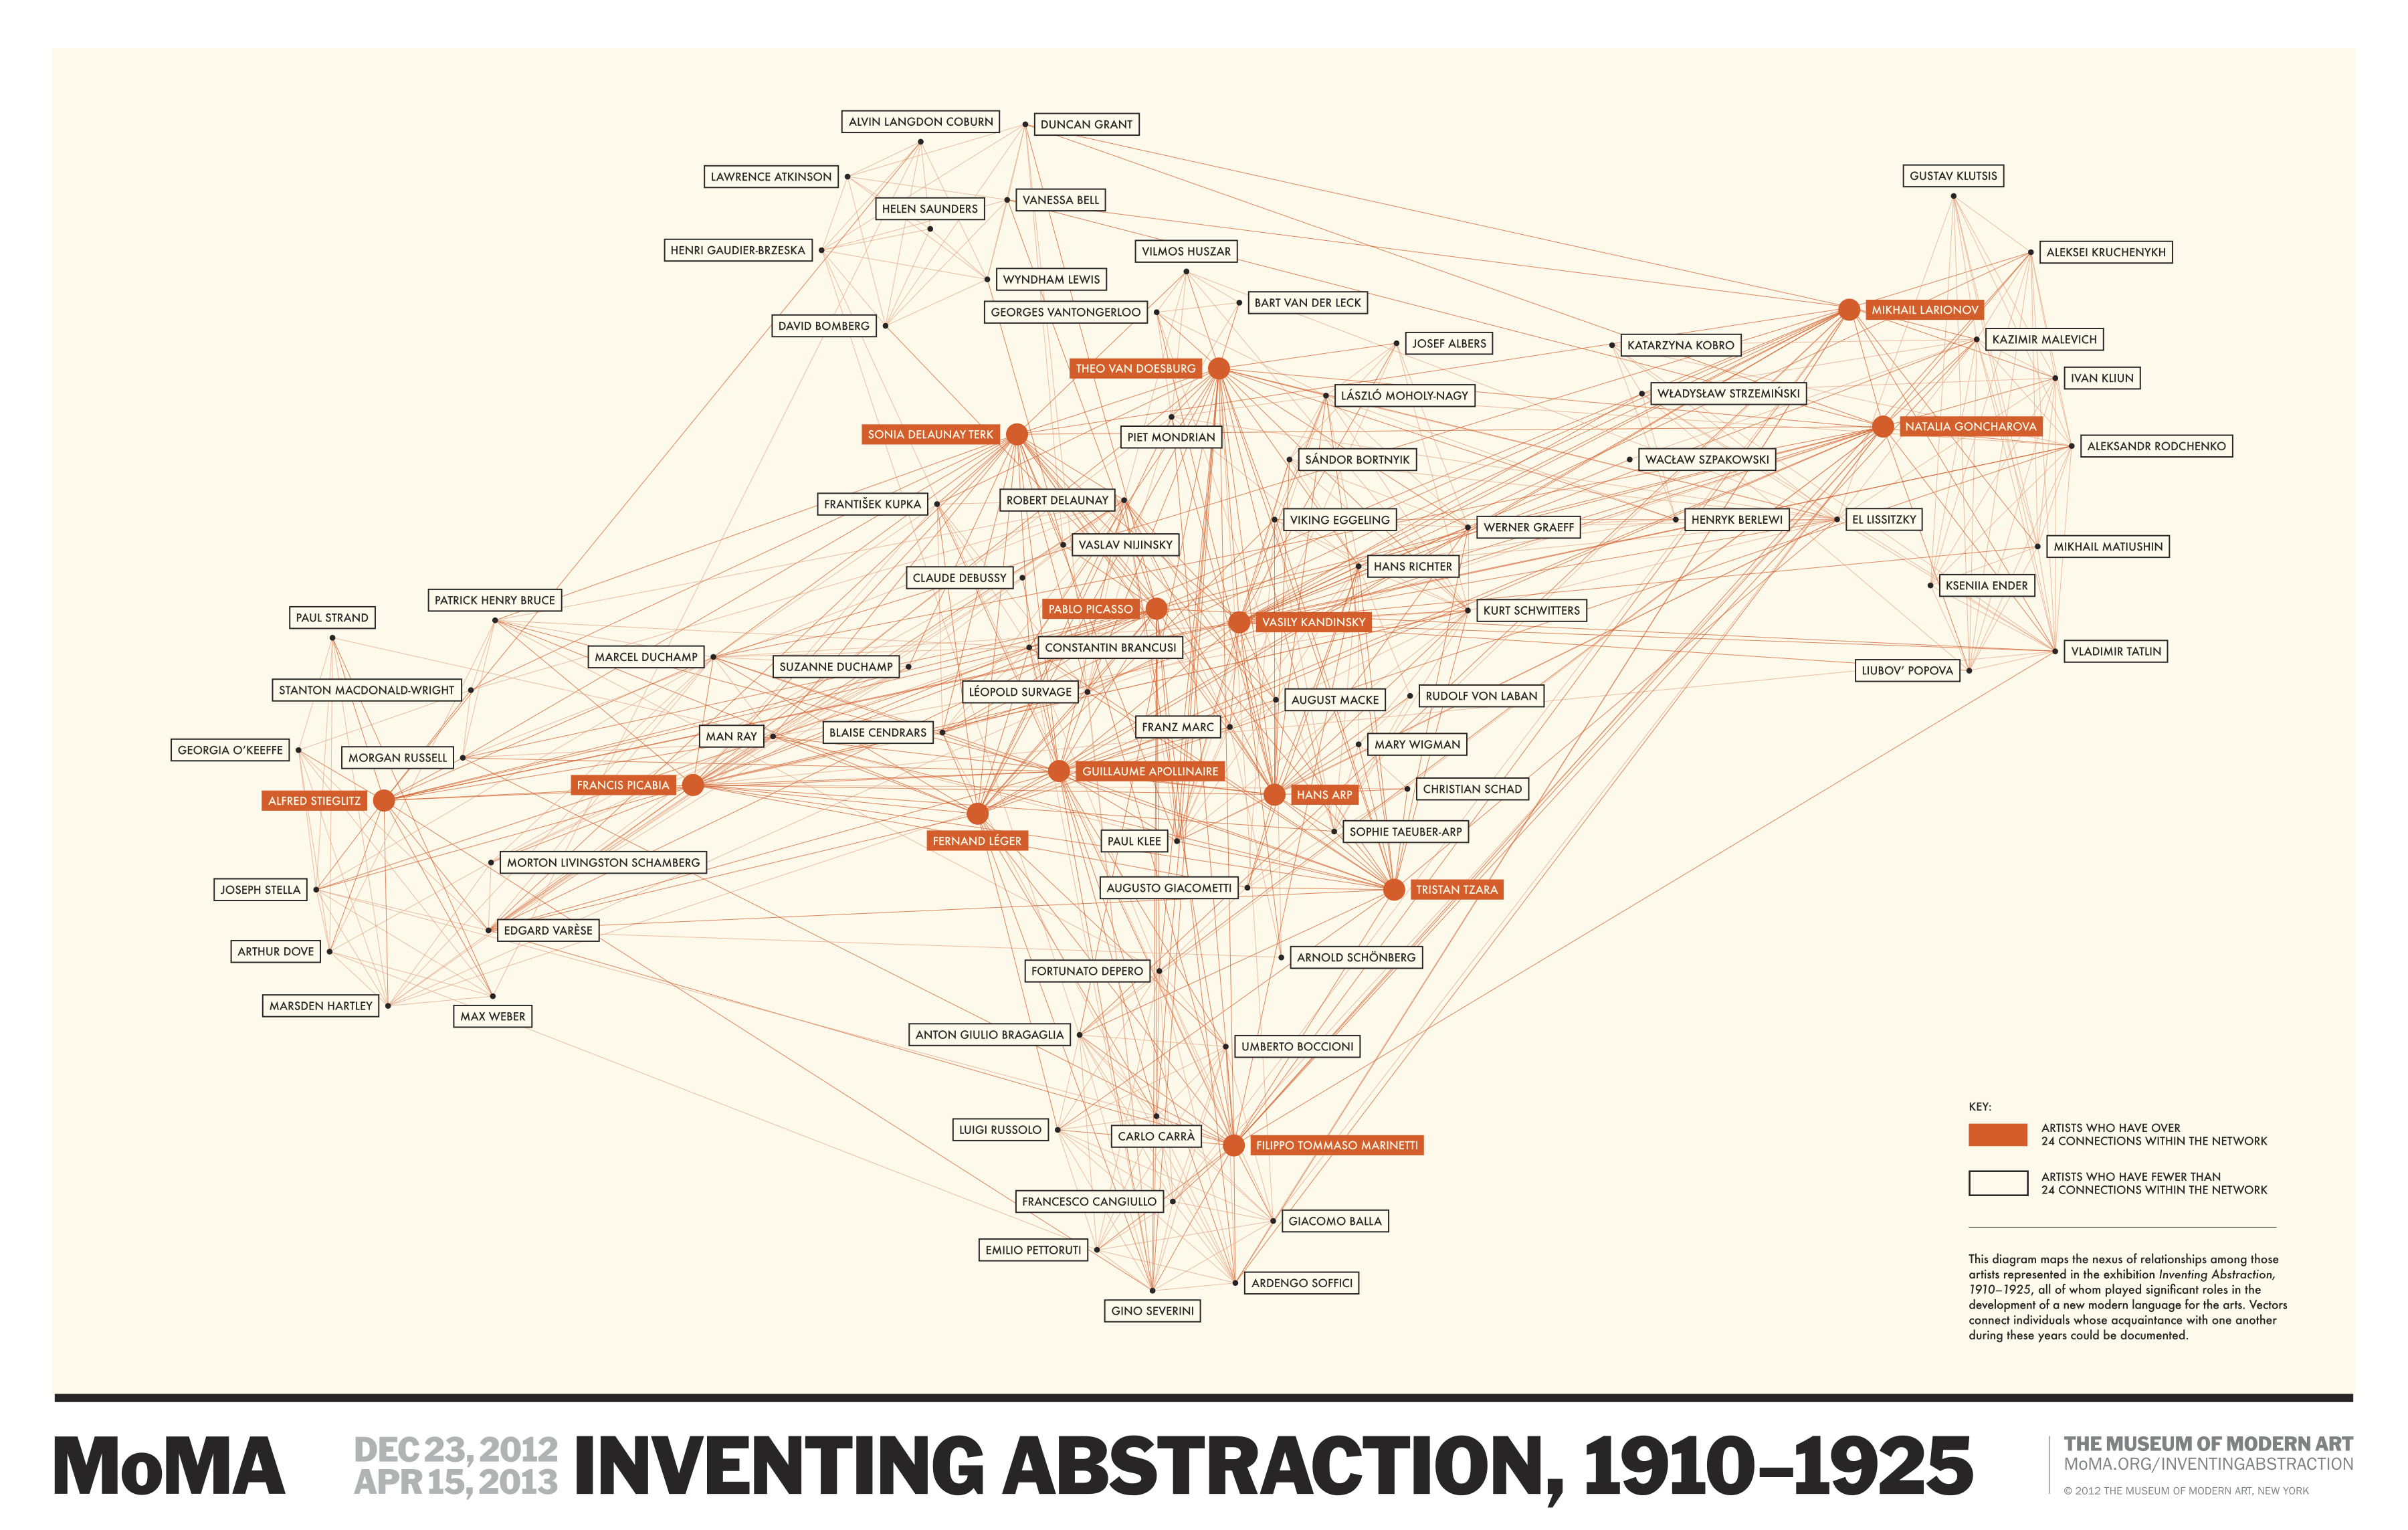 MoMA_InventingAbstraction_Network_Diagram